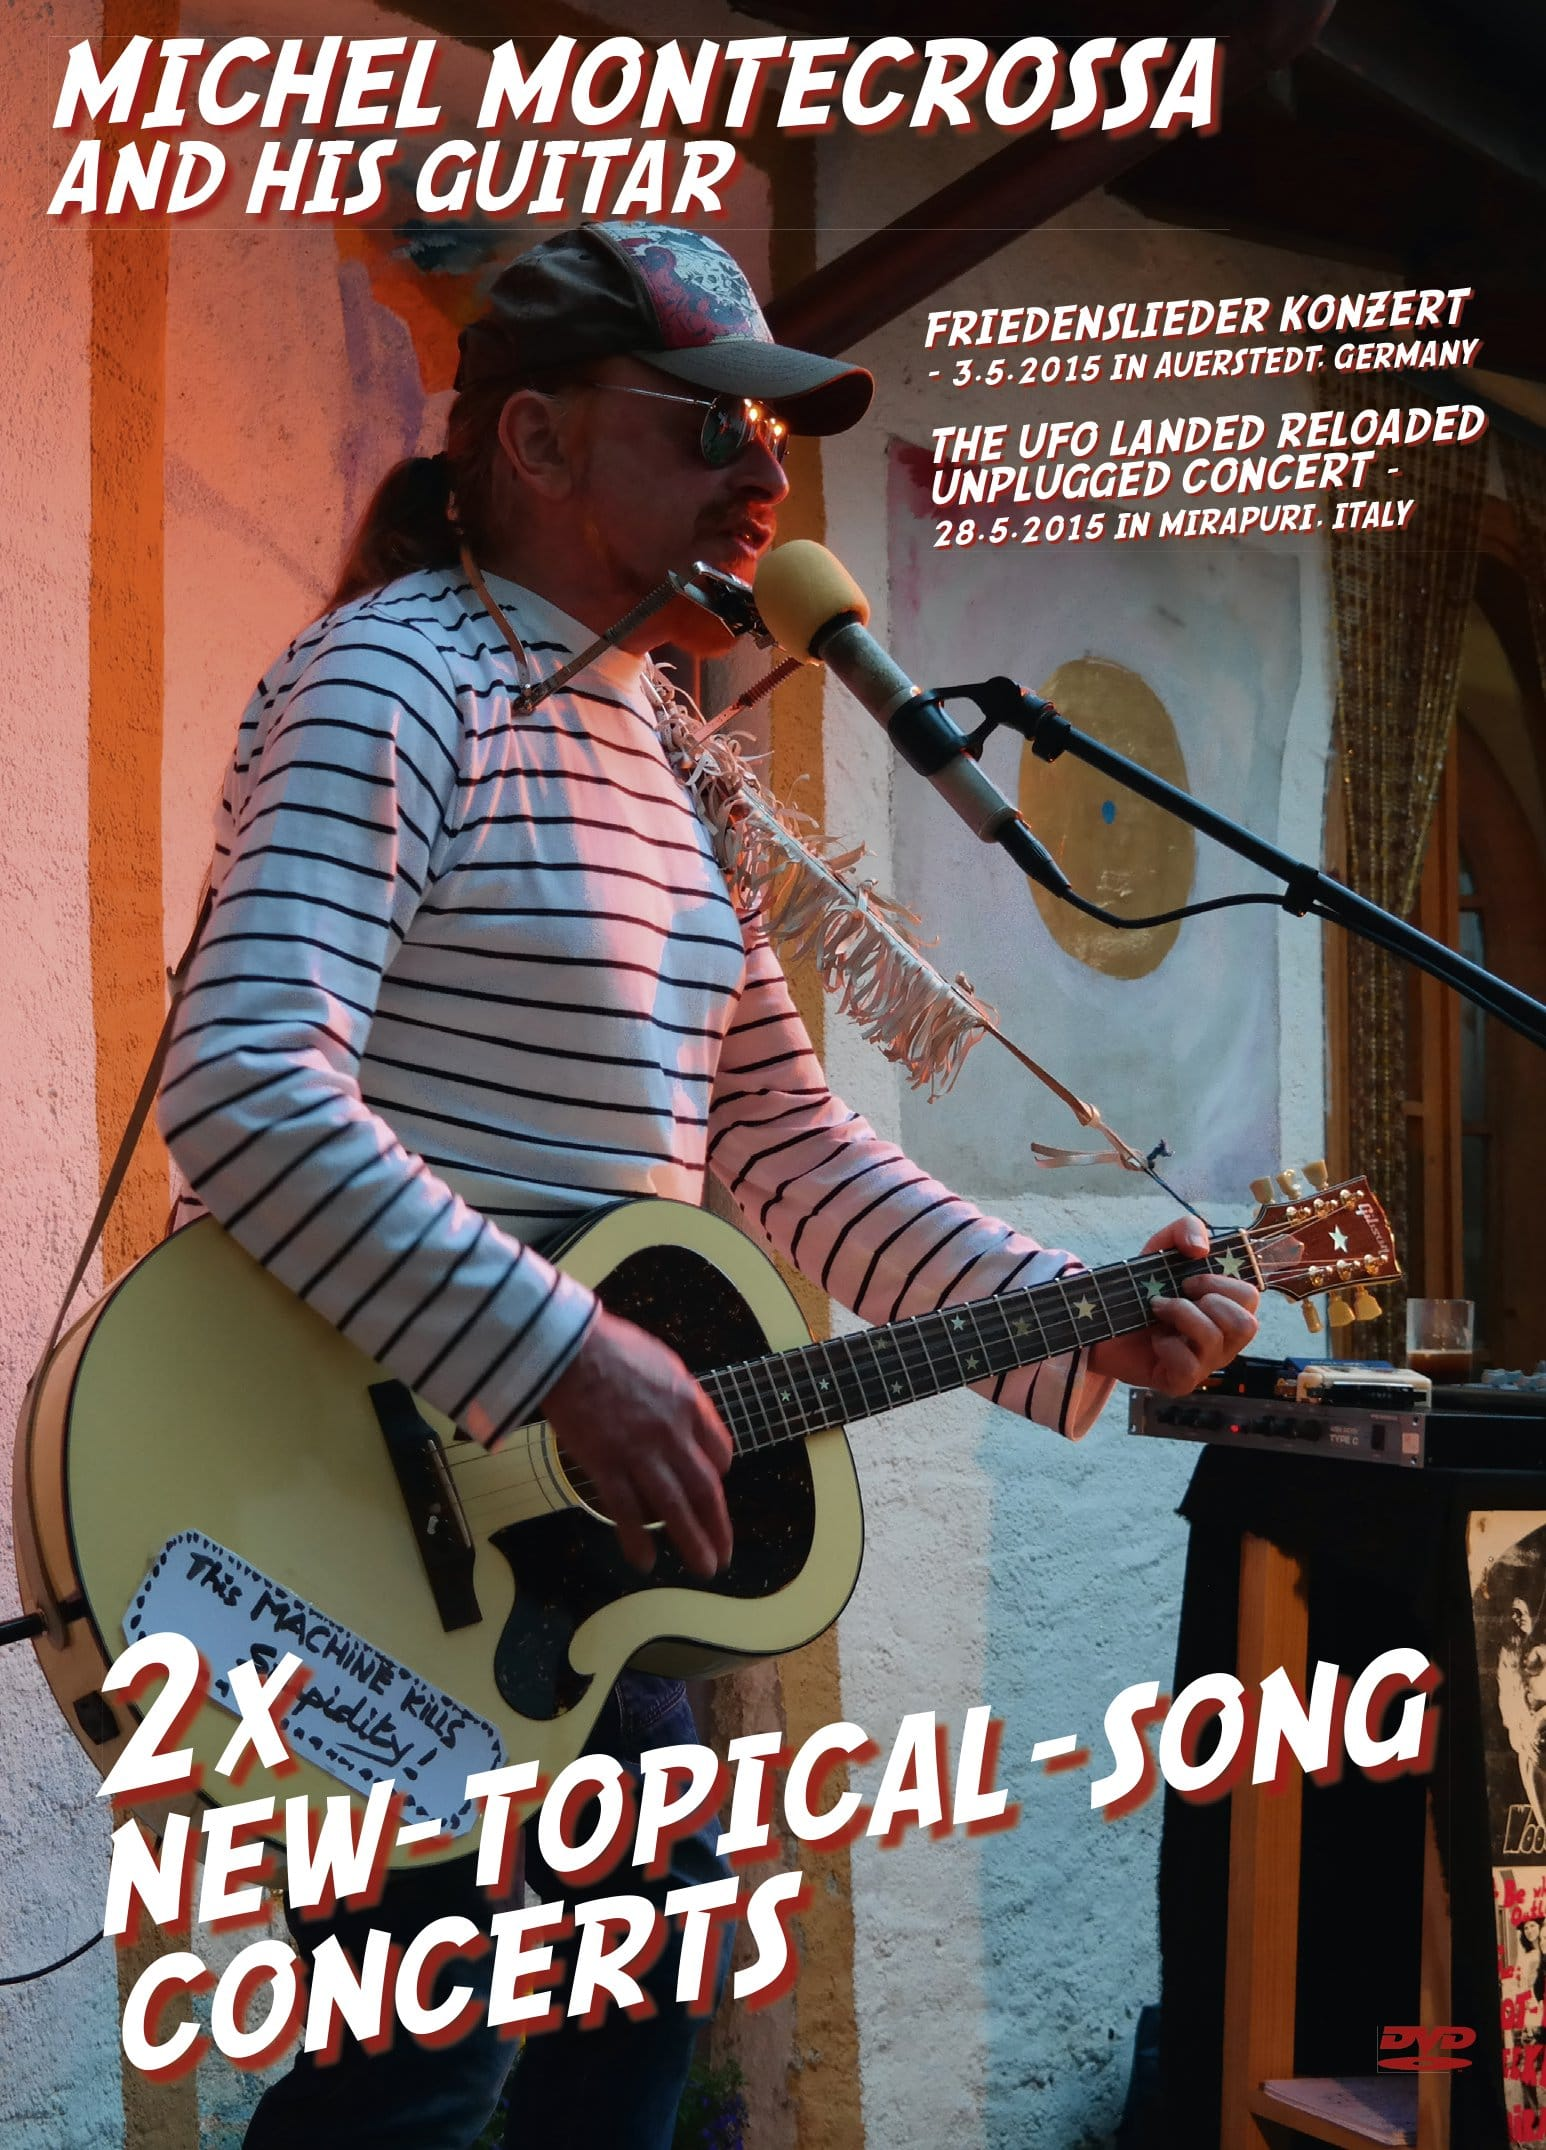 2x New-Topical-Song Concerts